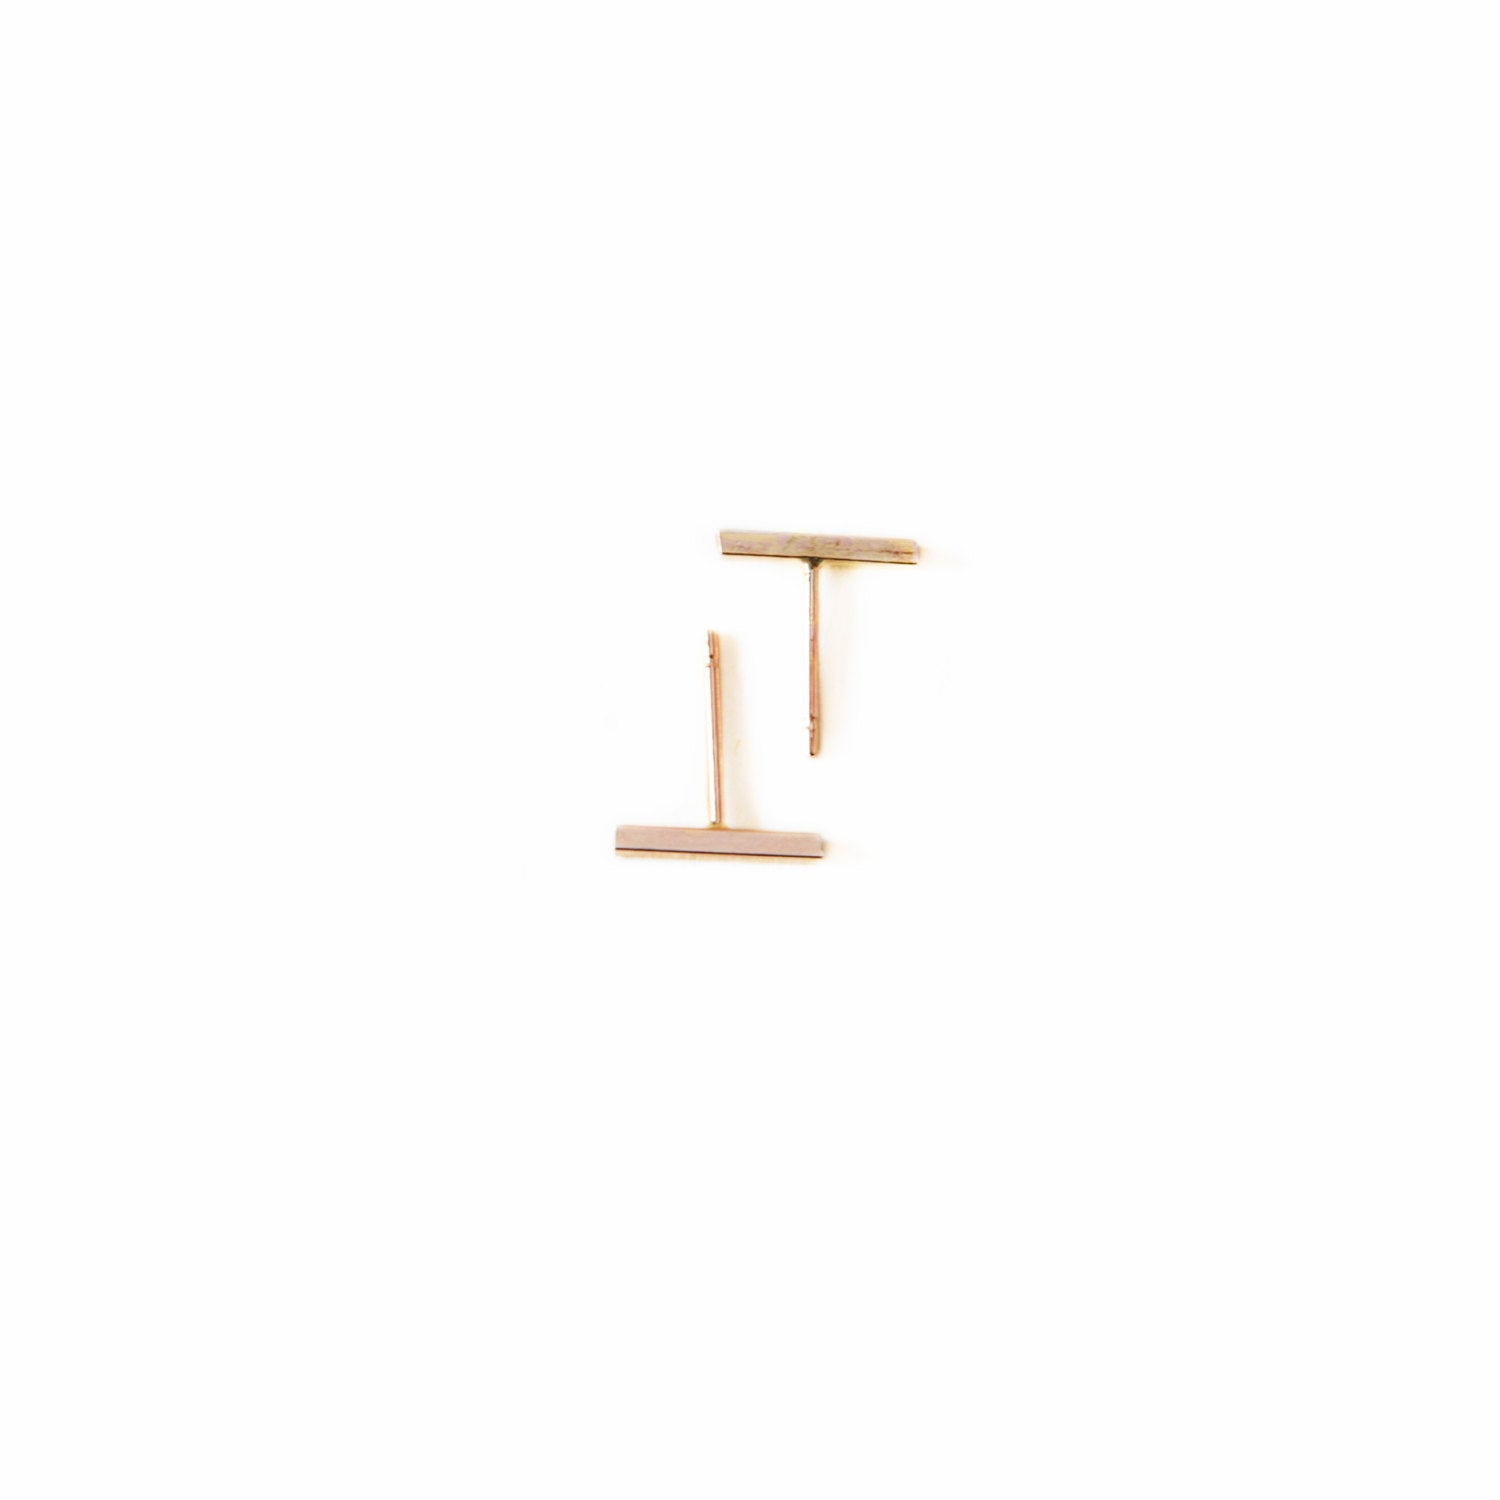 Tiny Bar Earrings - 14k GF